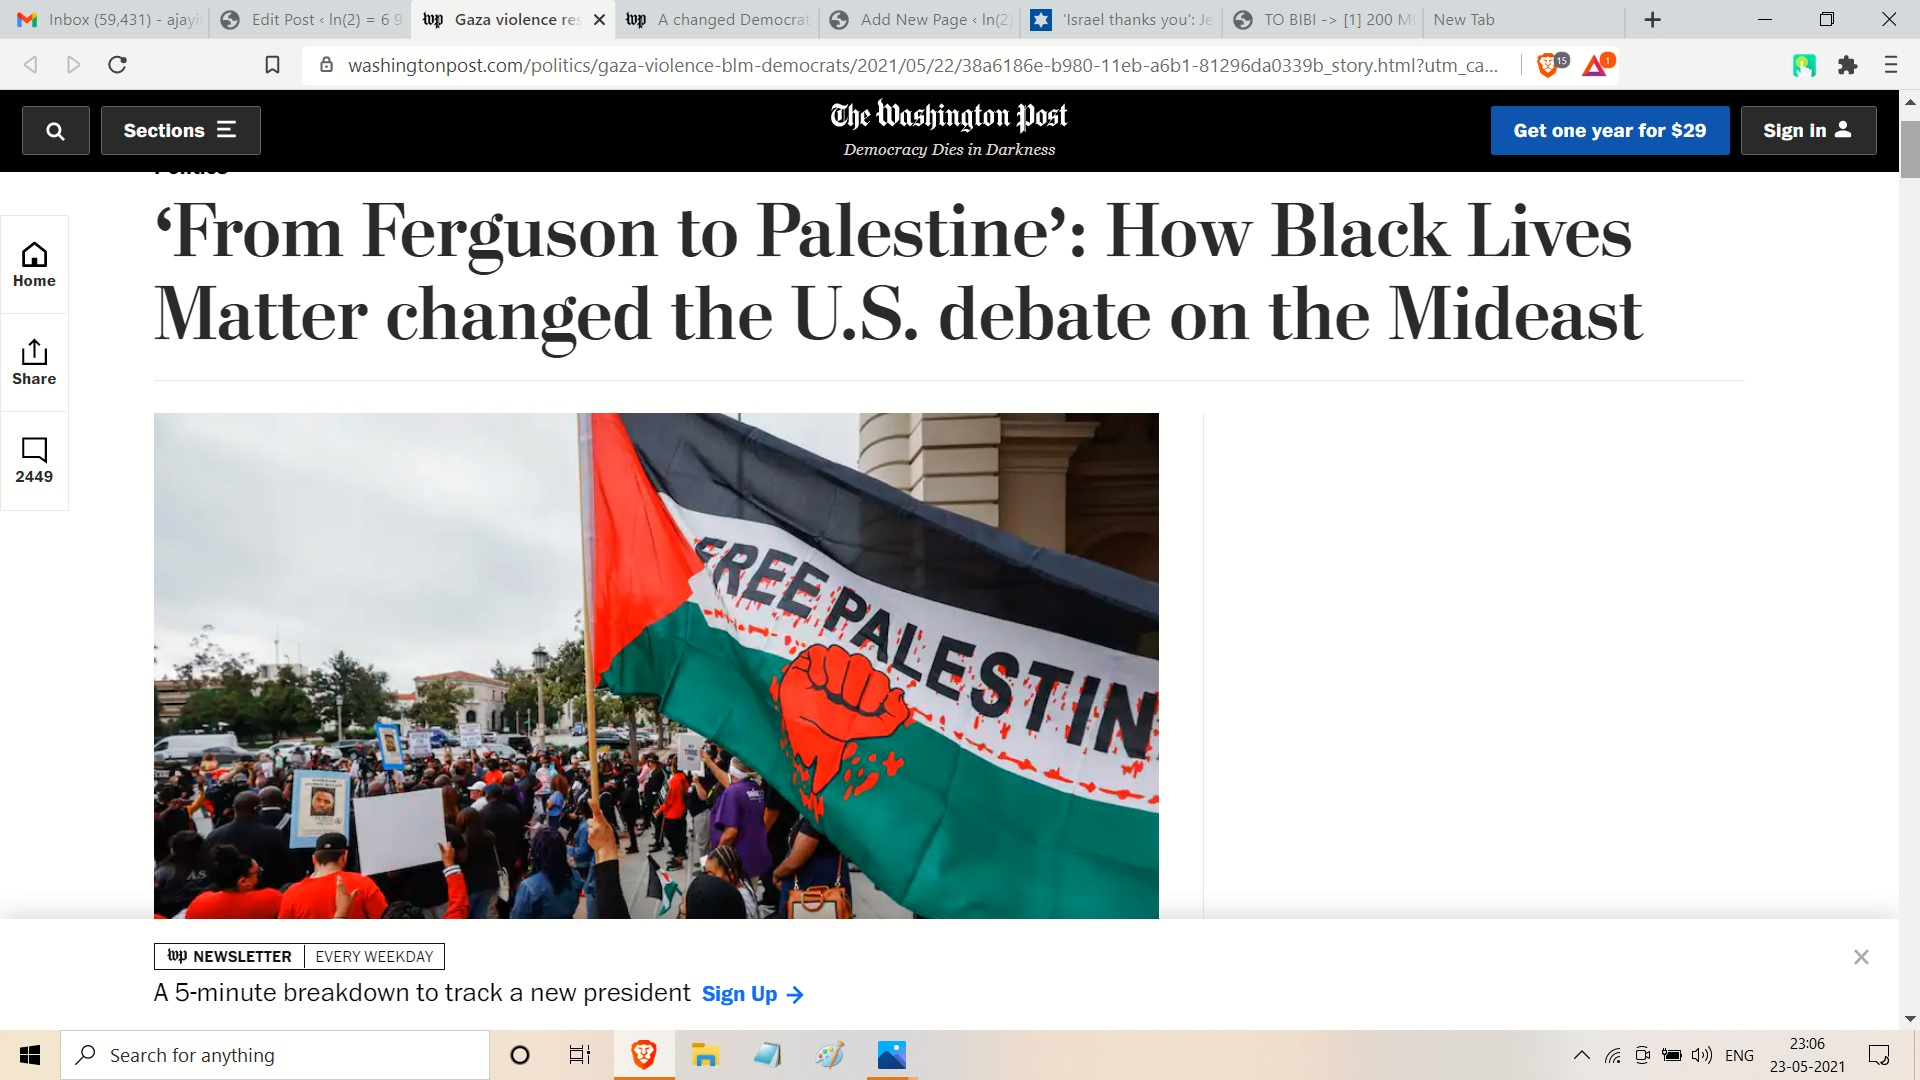 FROM AJAY MISHRA SO HERE IS BLACK LIVES MATETR AND 6 AND P FOR PALESTINE NOT ISRAEL ---